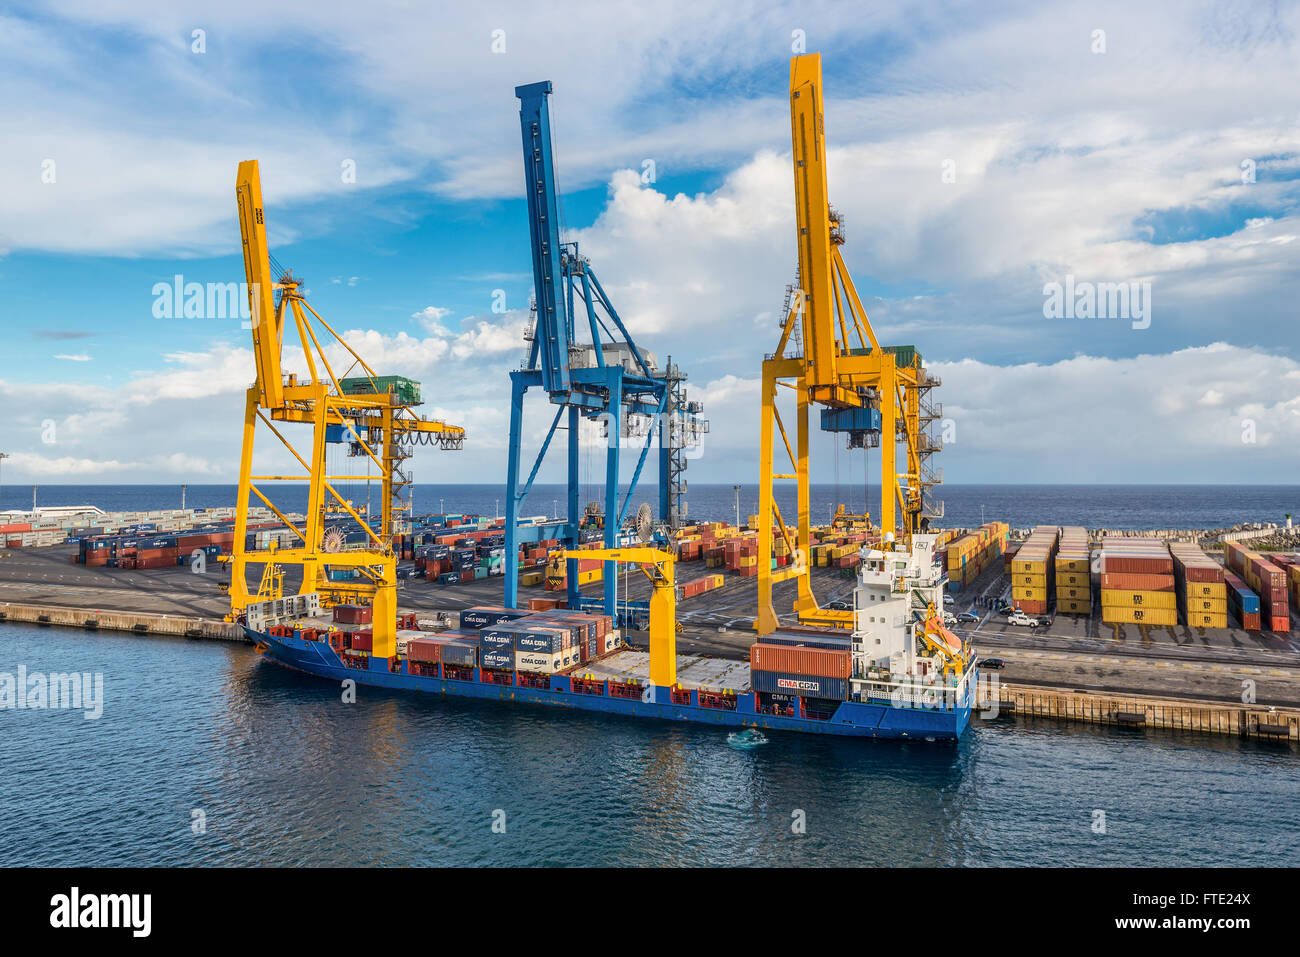 General Cargo Ship Kiara at the Harbor of Le Port on Reunion island, France - Stock Image